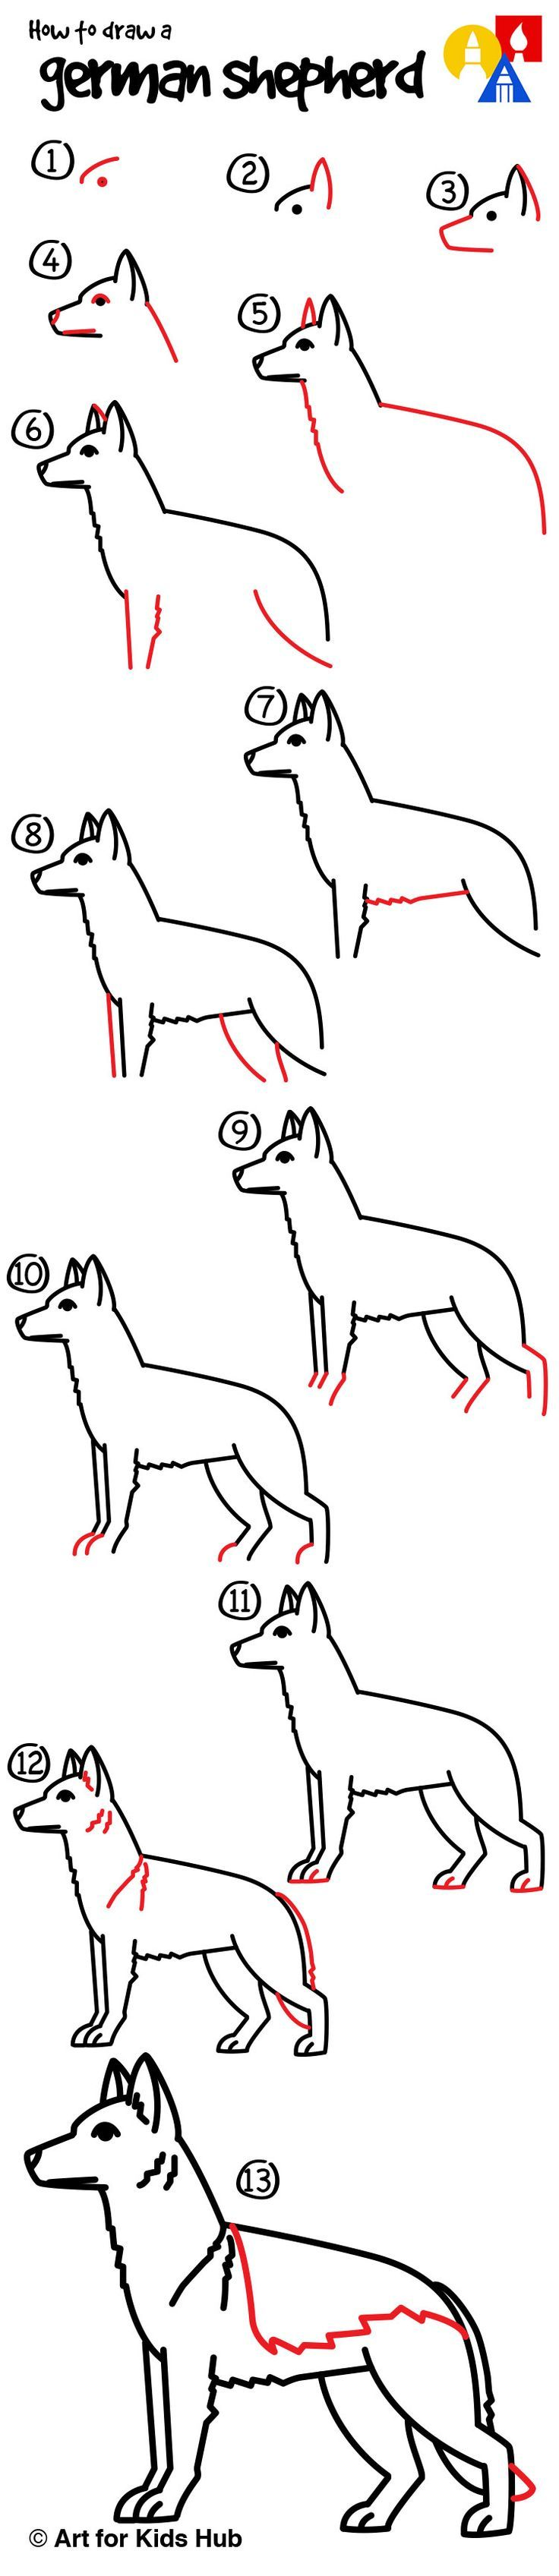 Learn how to draw a german shepherd with easy step by steps!